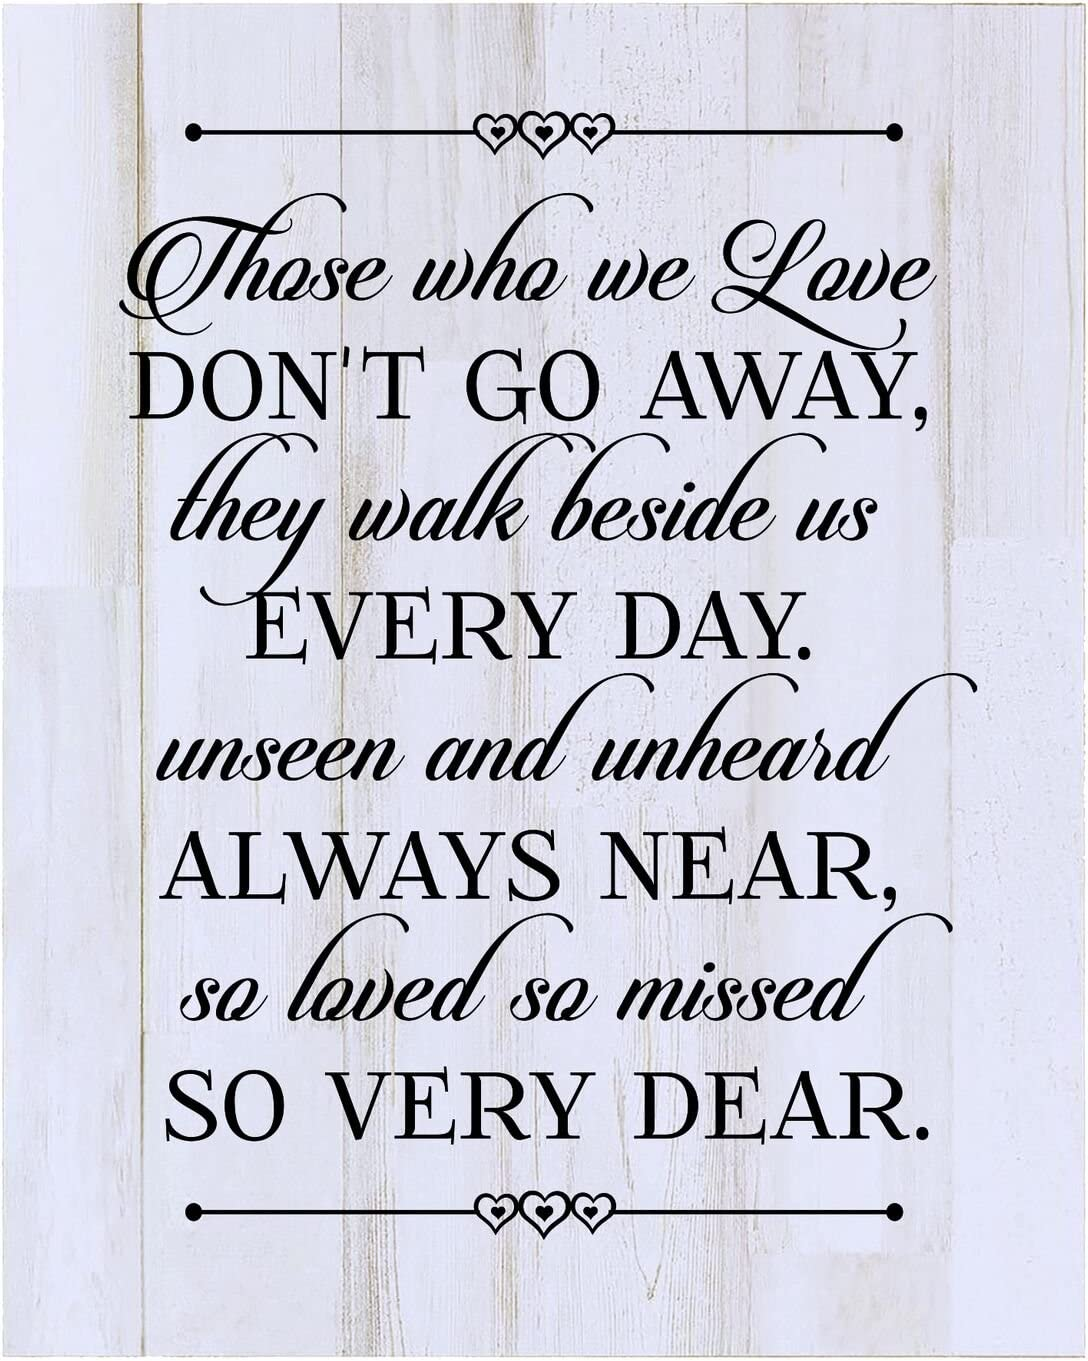 LifeSong Milestones Custom Engraved Personalized Wooden Wall Plaque Bereavement Keepsake in Remembrance Loss of Pet Dogs or Cats Condolence Funeral Gift 12x15 Those Who We Love